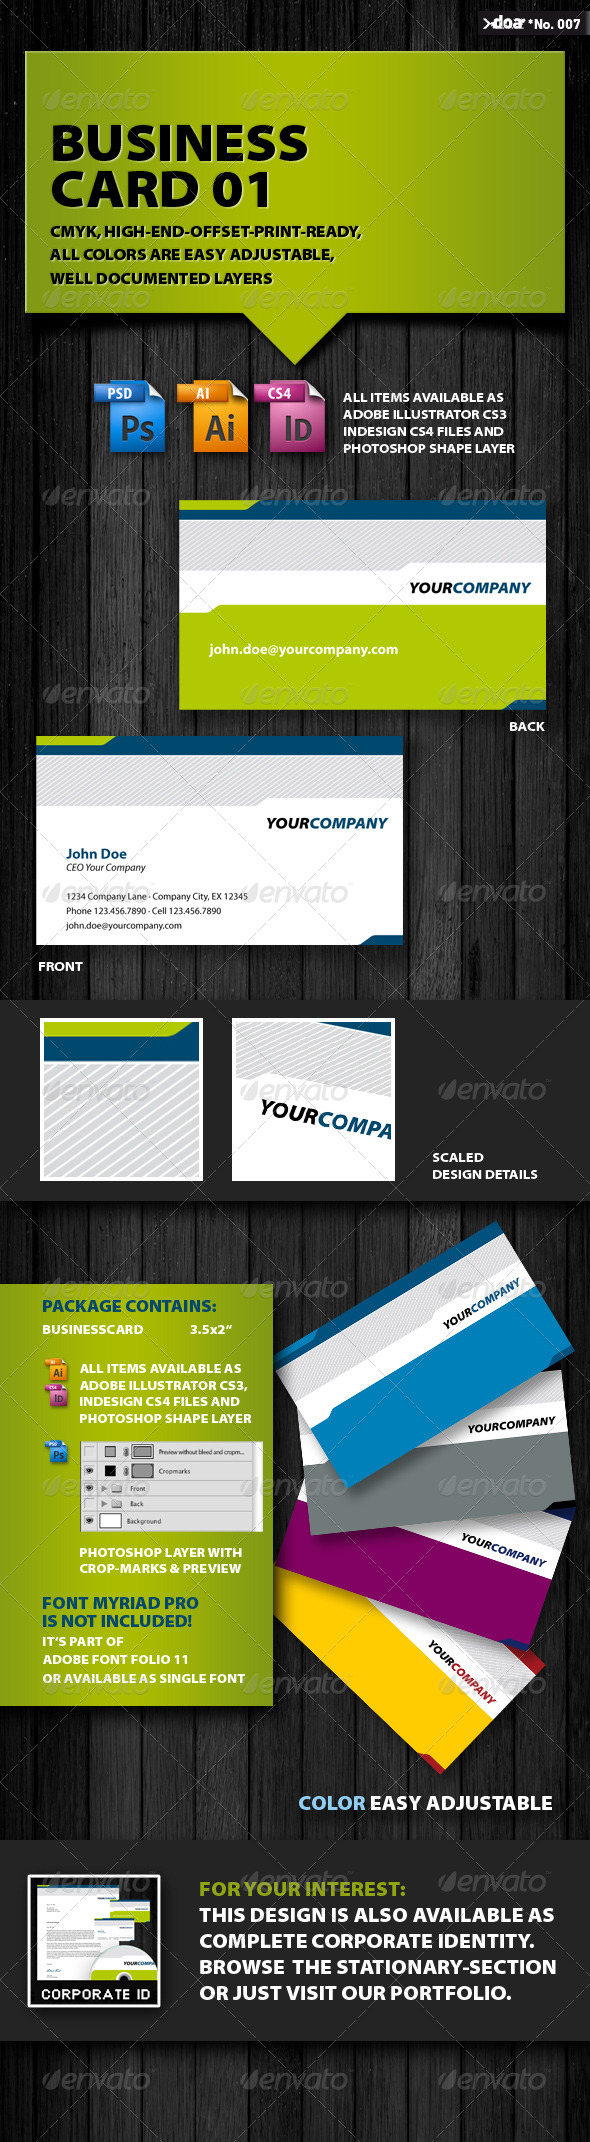 Business Card 01 - Creative Business Cards